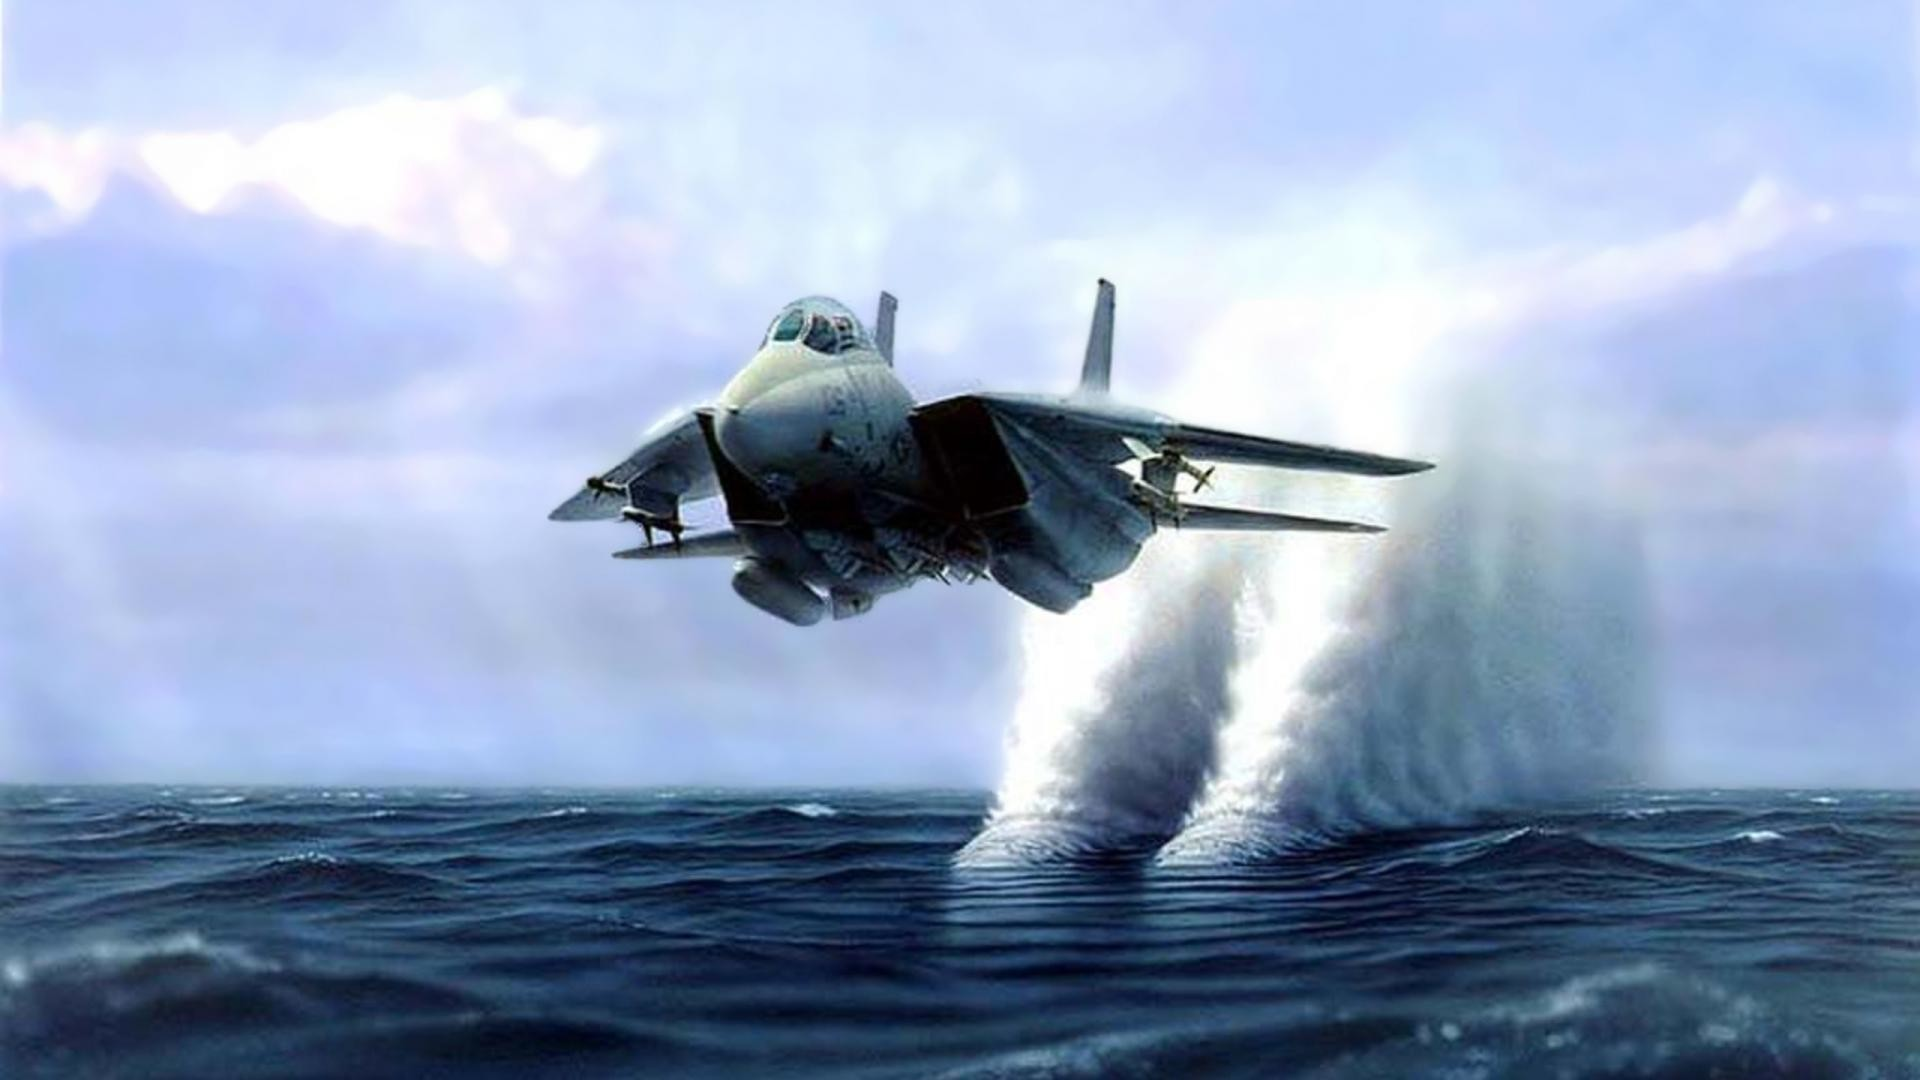 Jet Fighter Painting HD Desktop Wallpaper for K Ultra HD TV